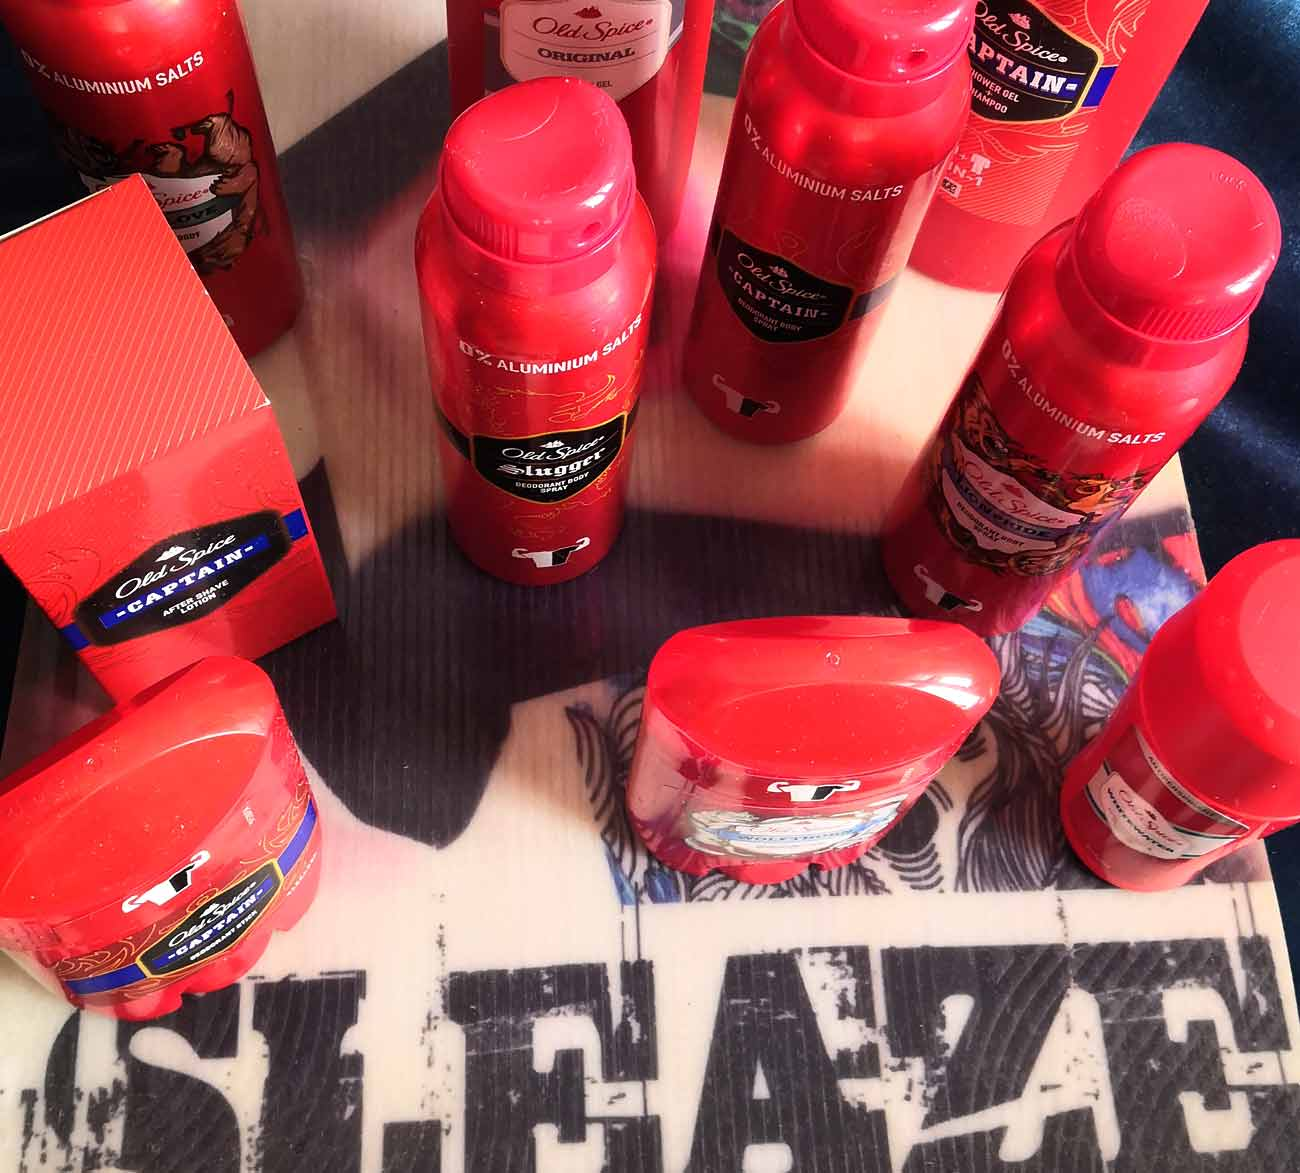 SLEAZE + Old Spice Alter